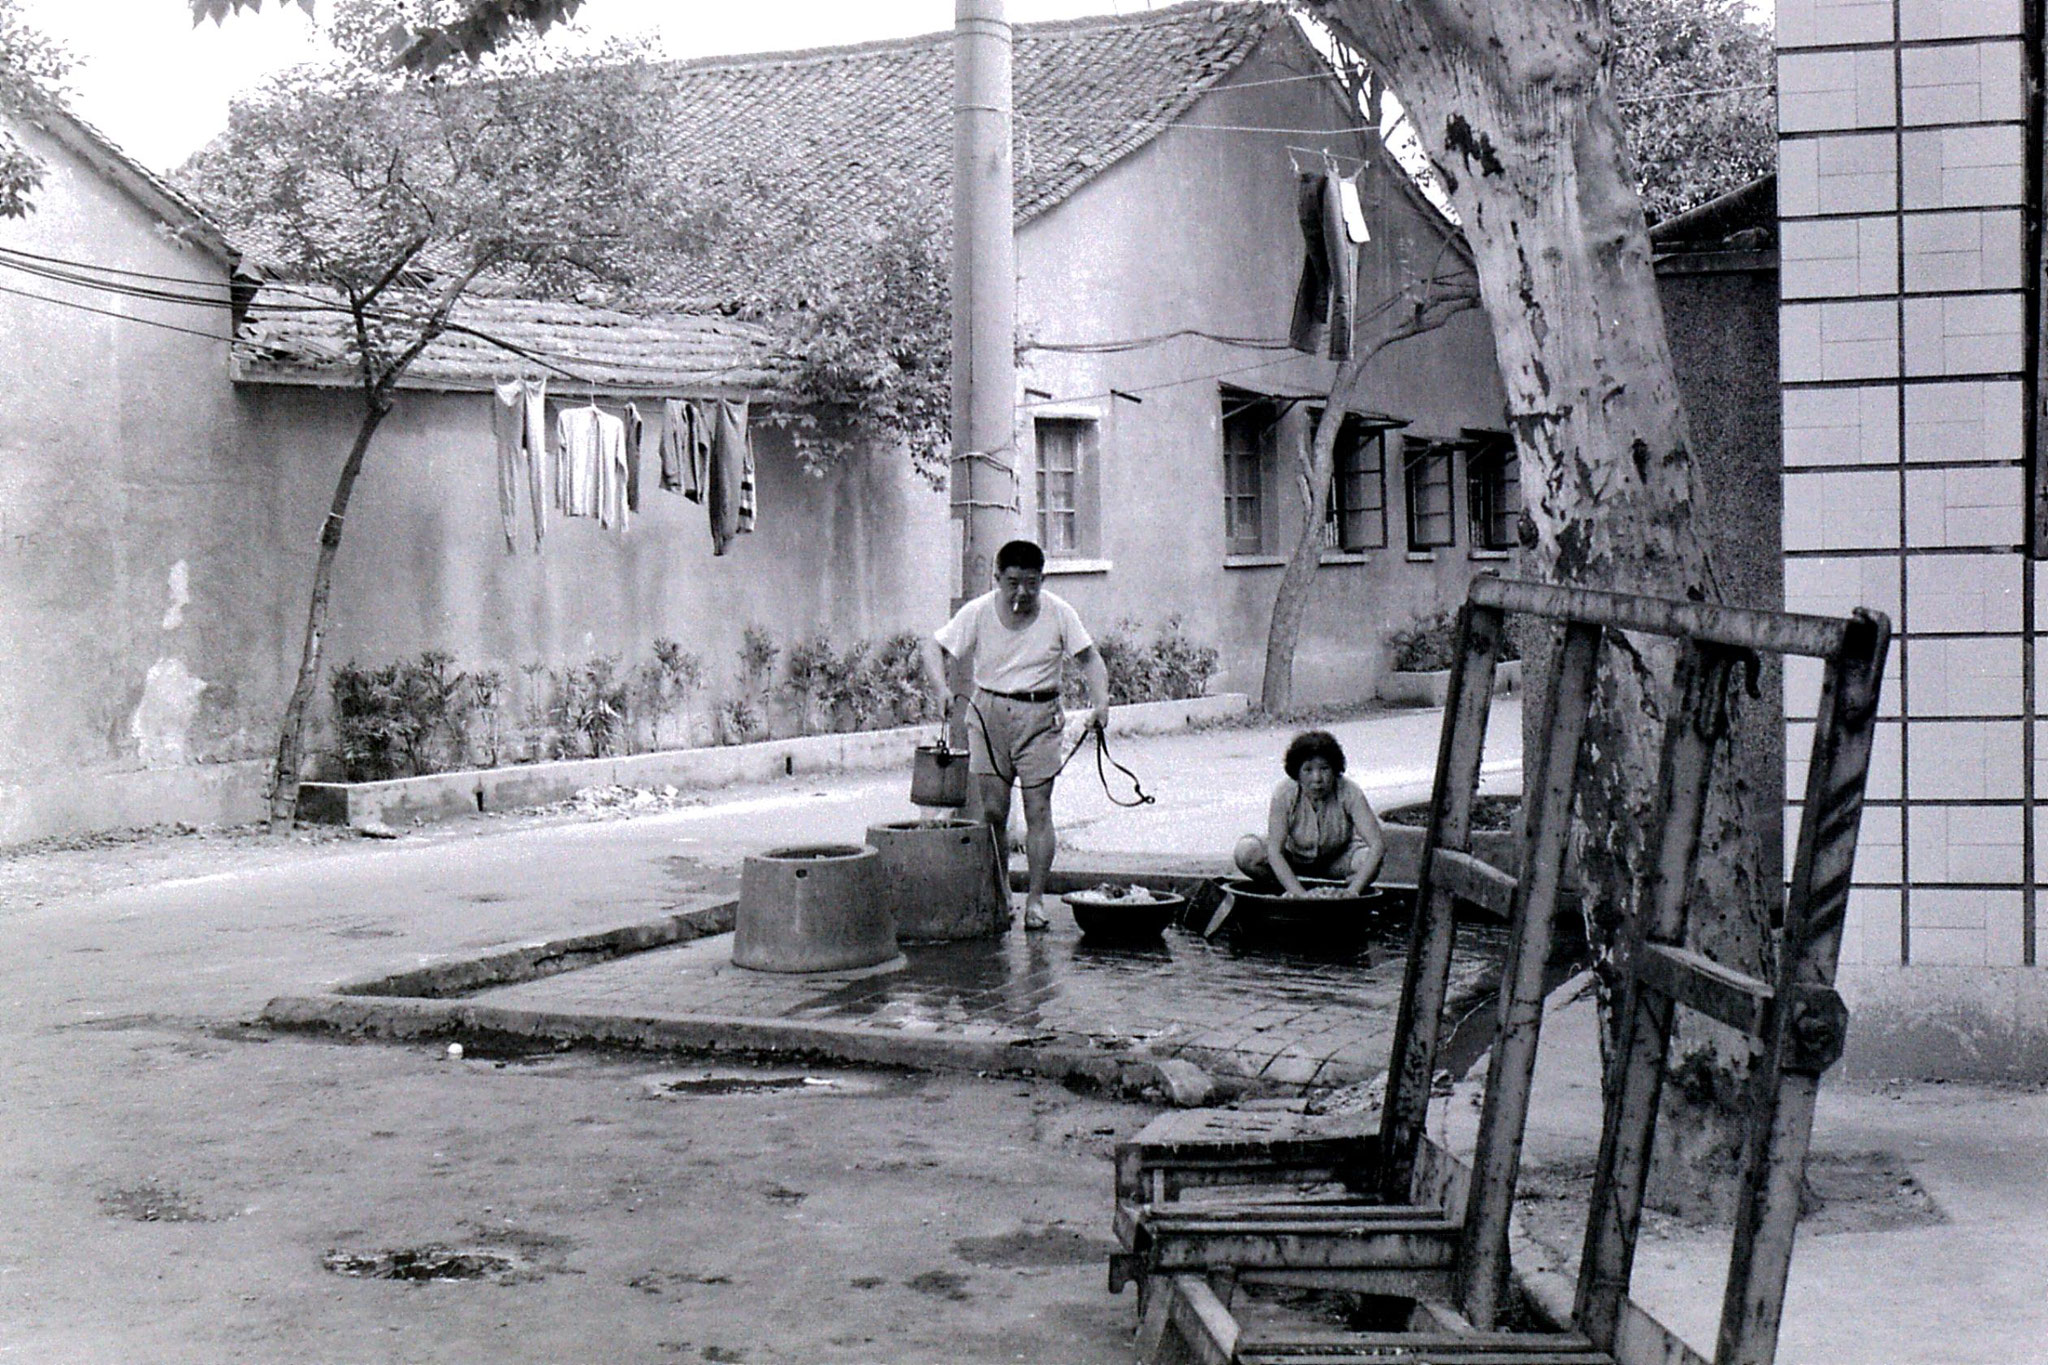 6/6/1989: 29: washing in street